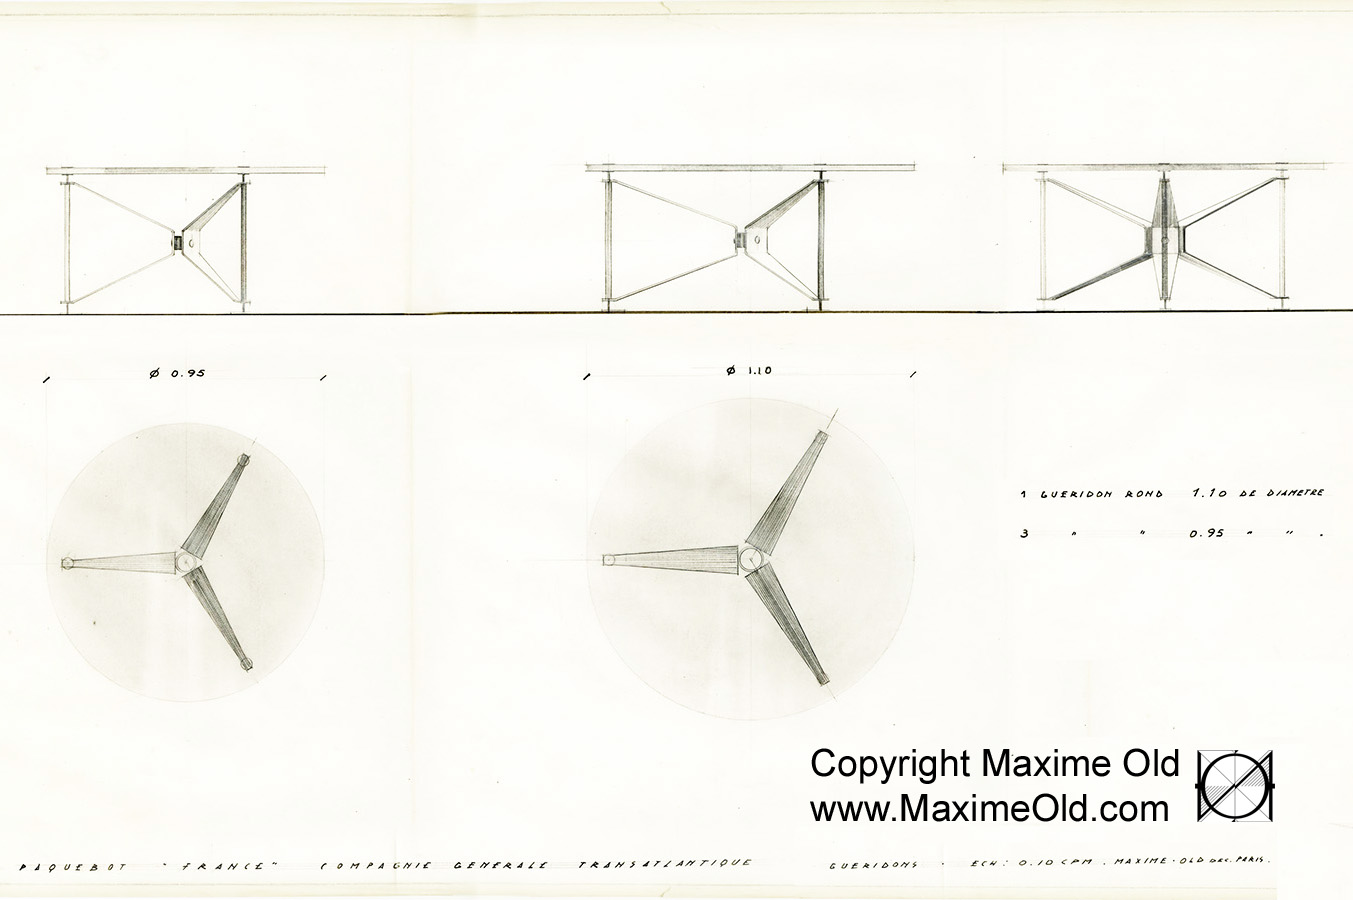 Meubles Basic Line France Original Cruise Liner France Propeller Table Archives Maxime Old